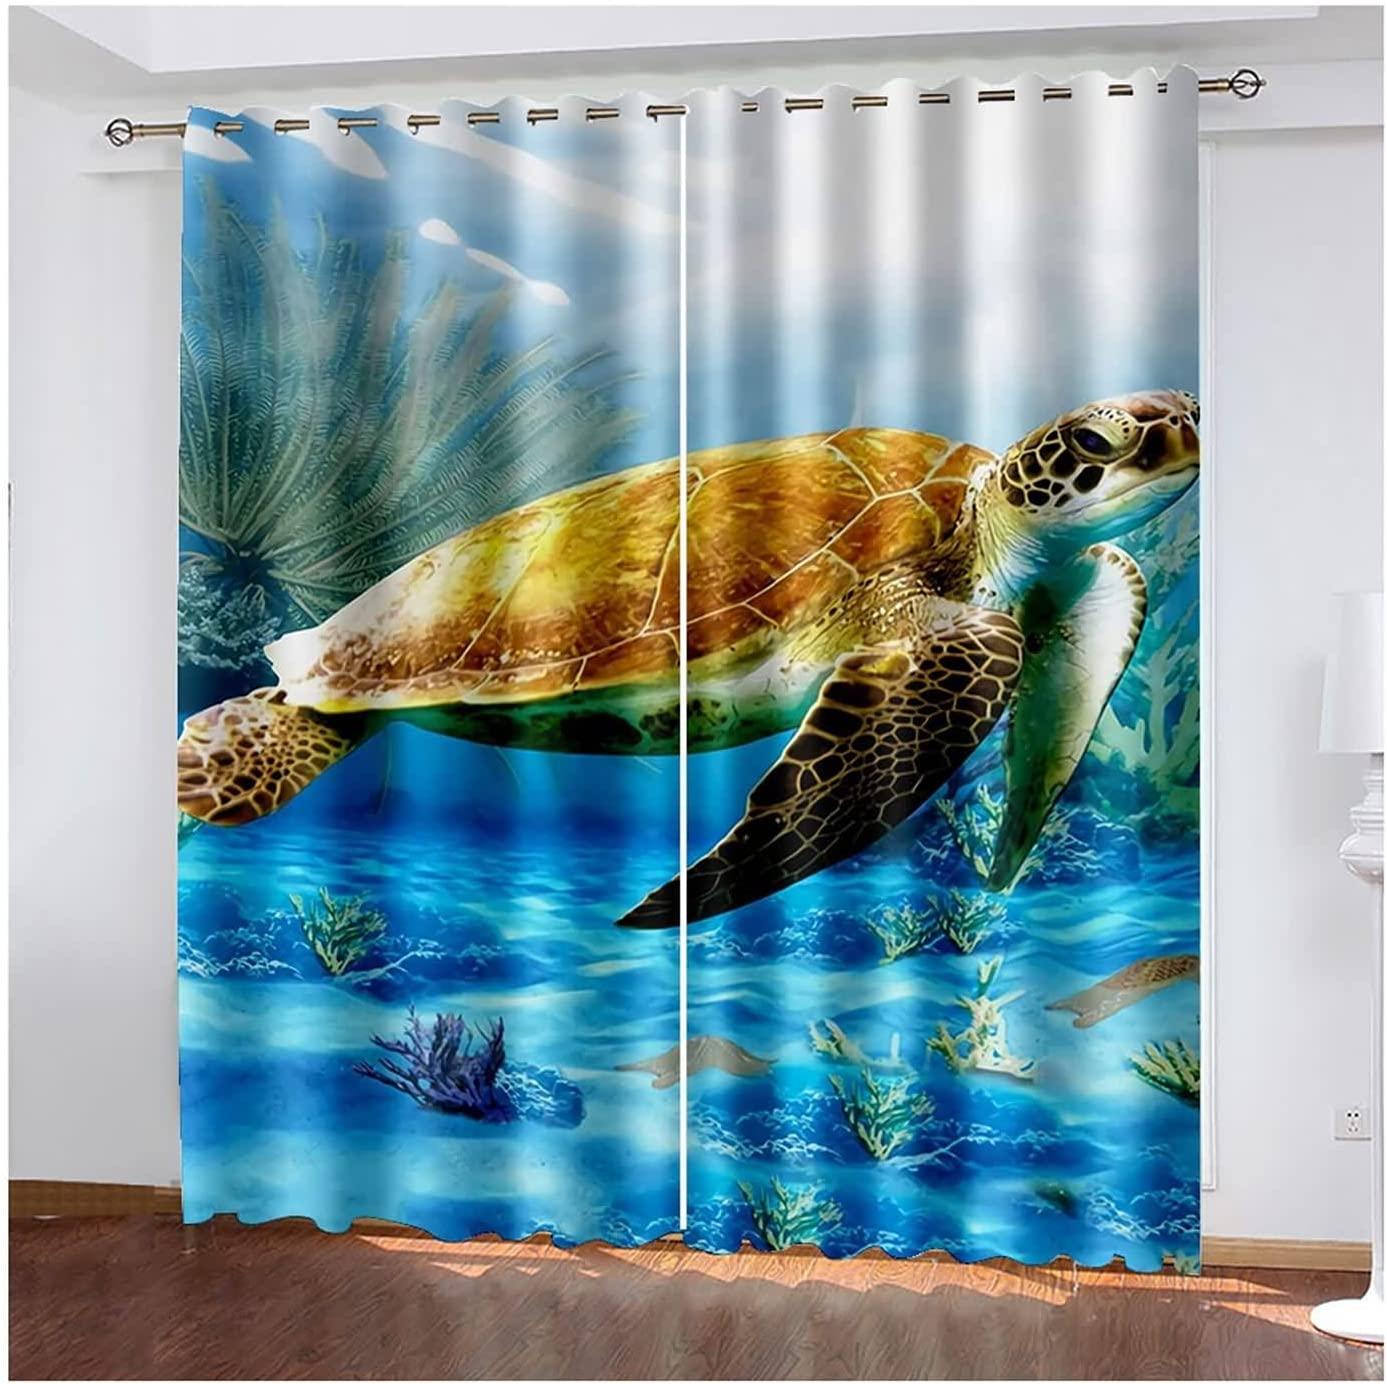 Window Curtains 2 Panels Blackout lowest price Drapes Fresno Mall Tu for Living Sea Room